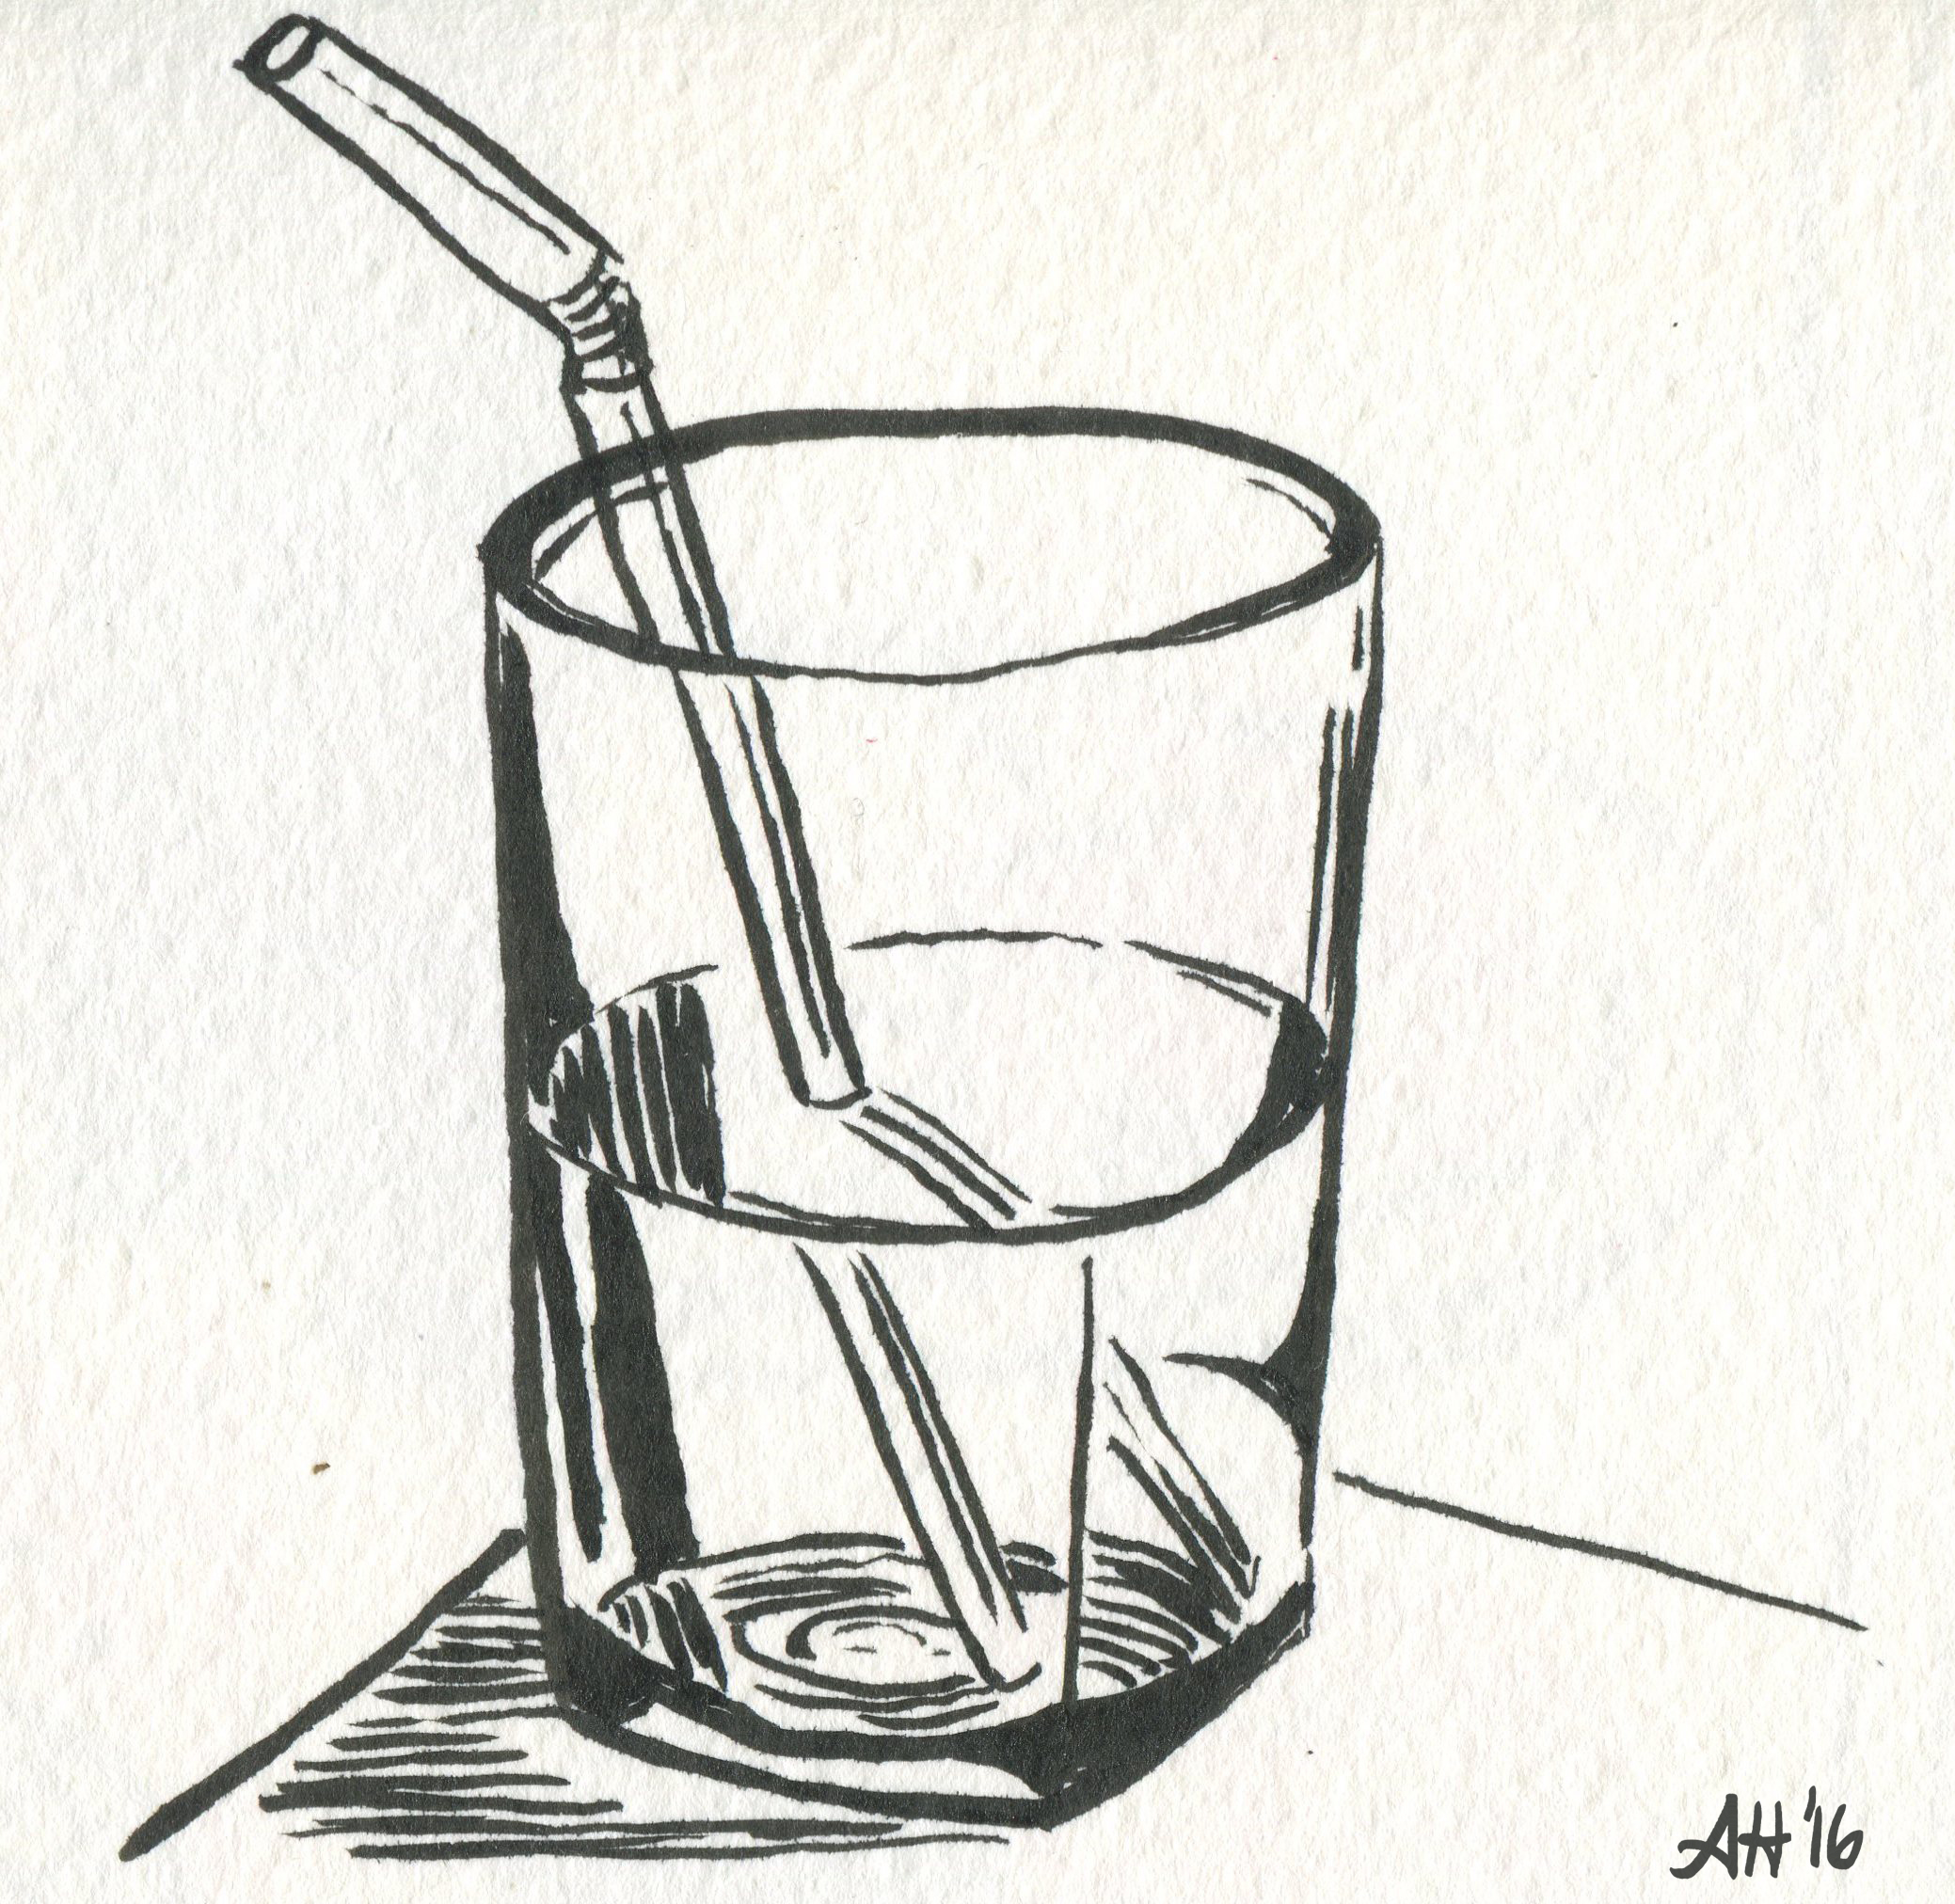 a sketch of a glass half full of water by alleanna harris